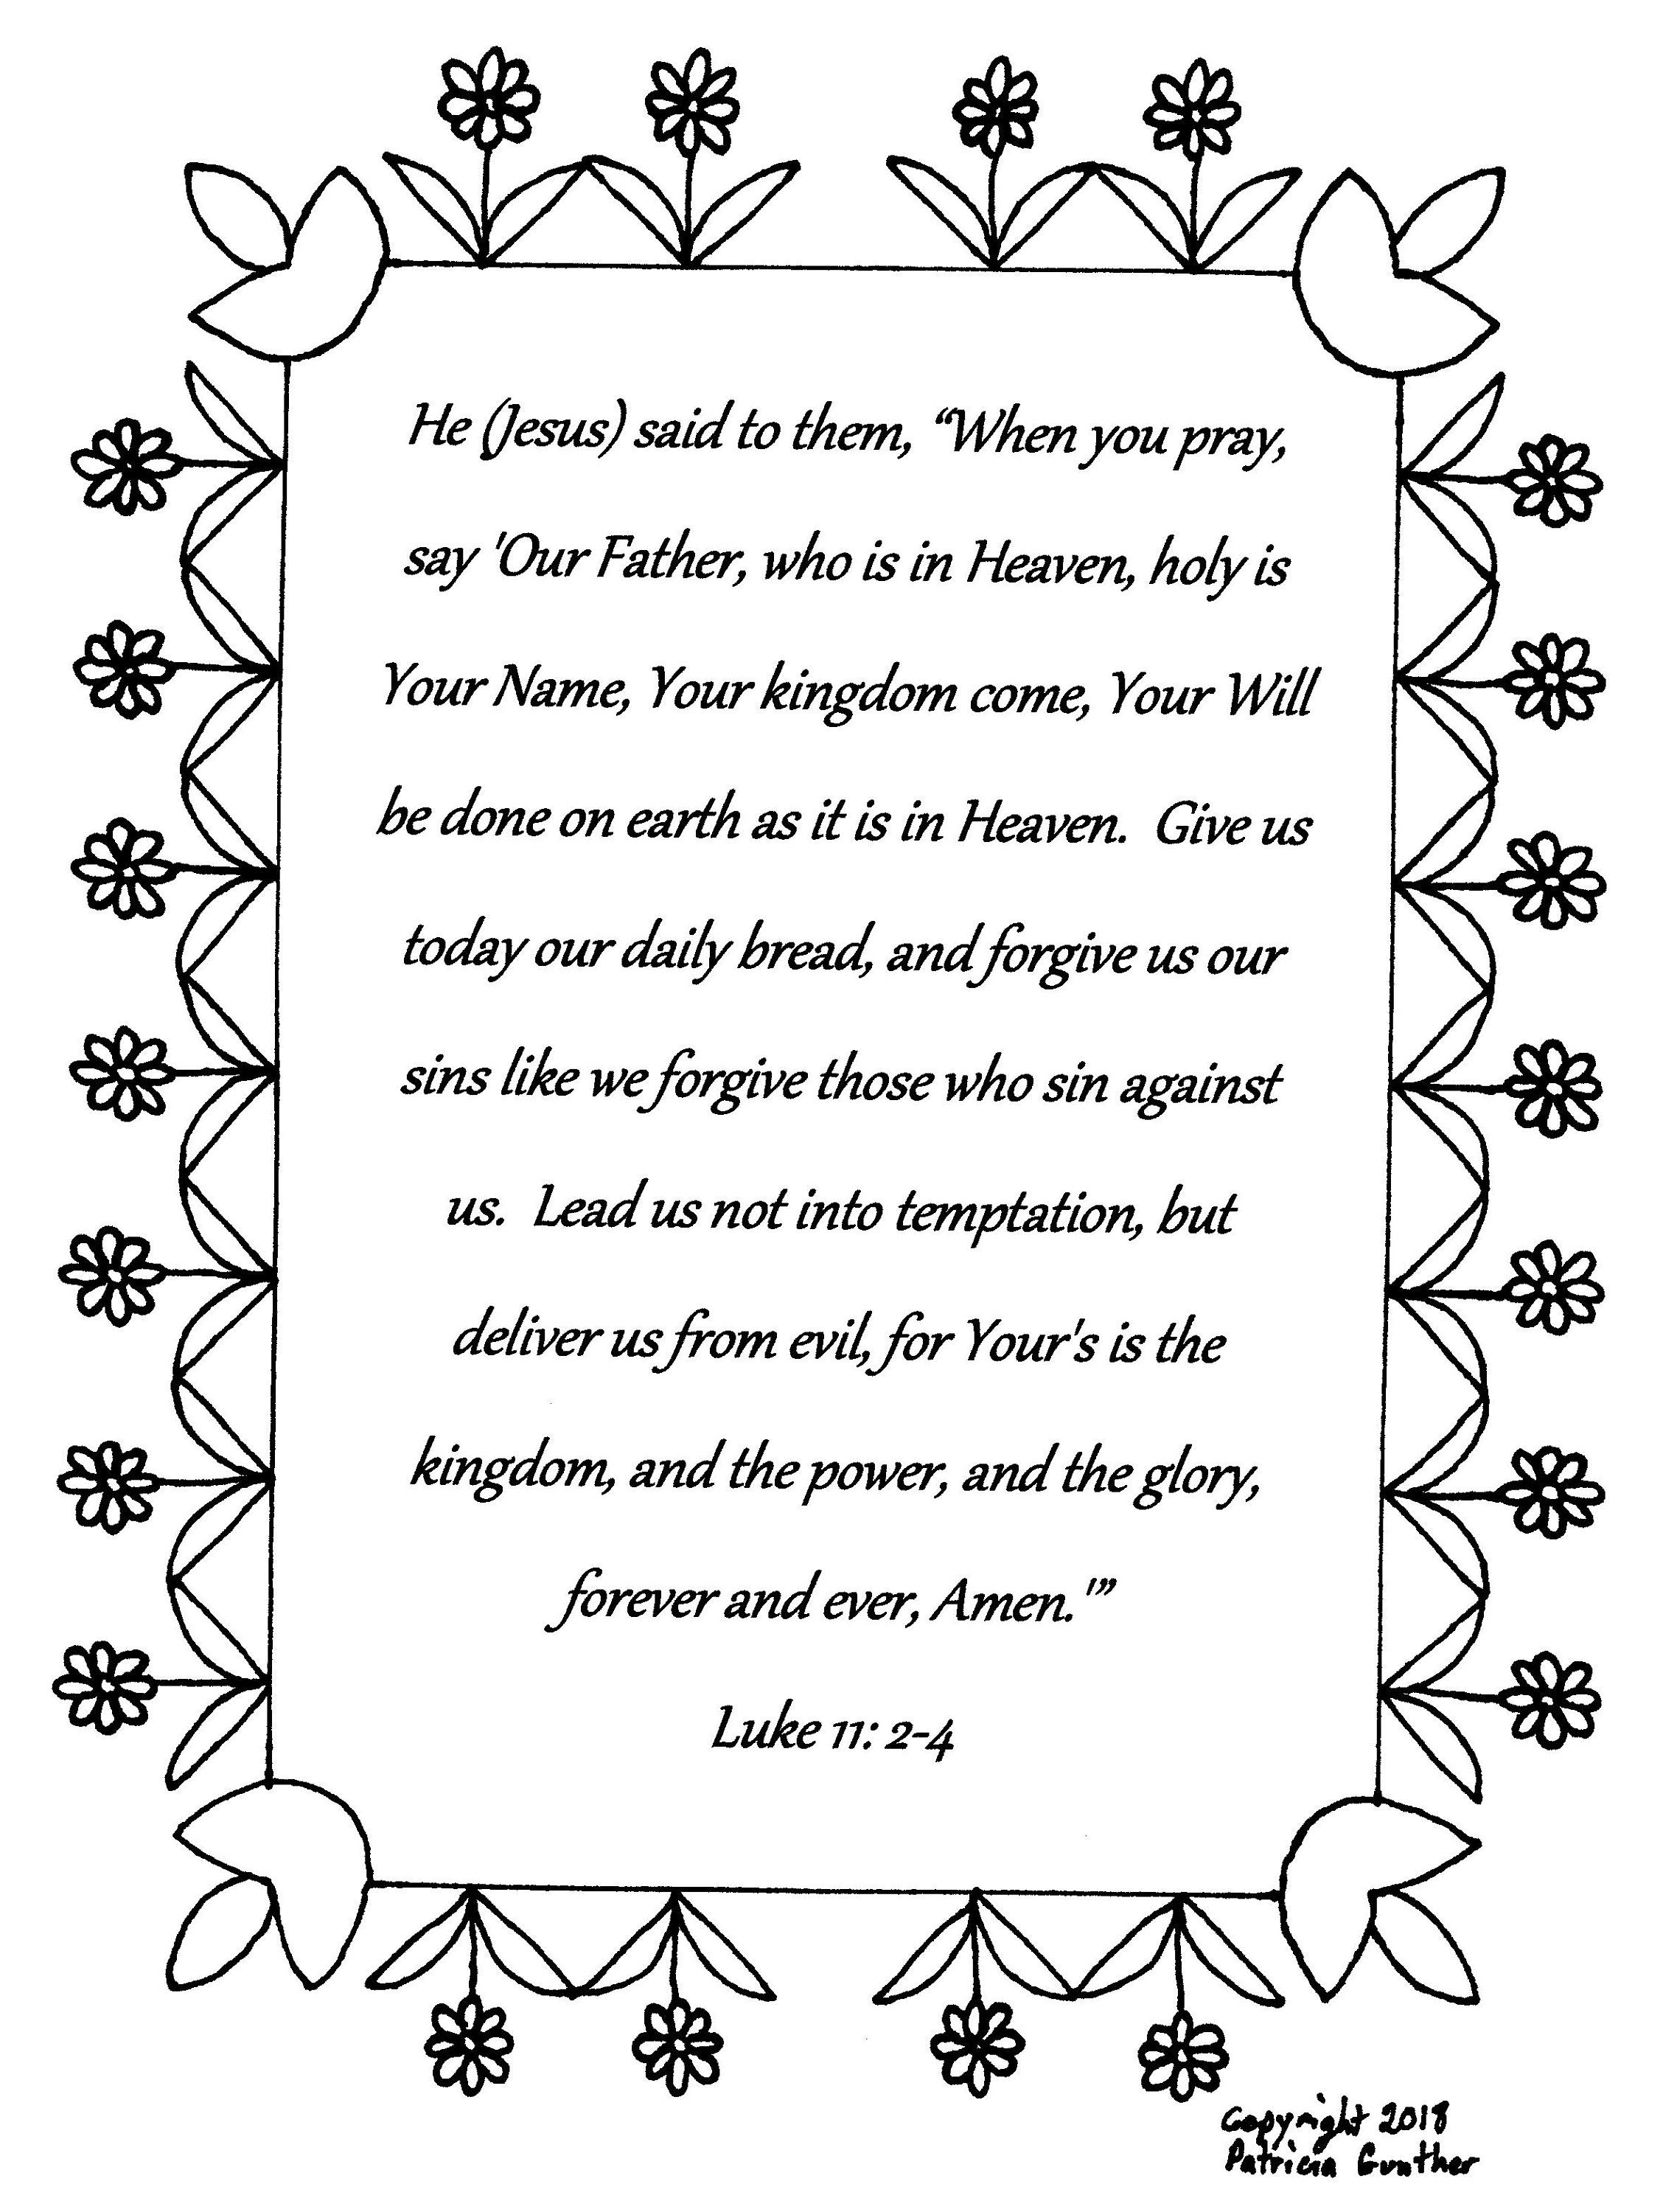 The Lord S Prayer Luke 11 2 4 Bible Verse Coloring Page Download By Horsefeathernuggets On Et Bible Verse Coloring Page Bible Verse Coloring The Lords Prayer